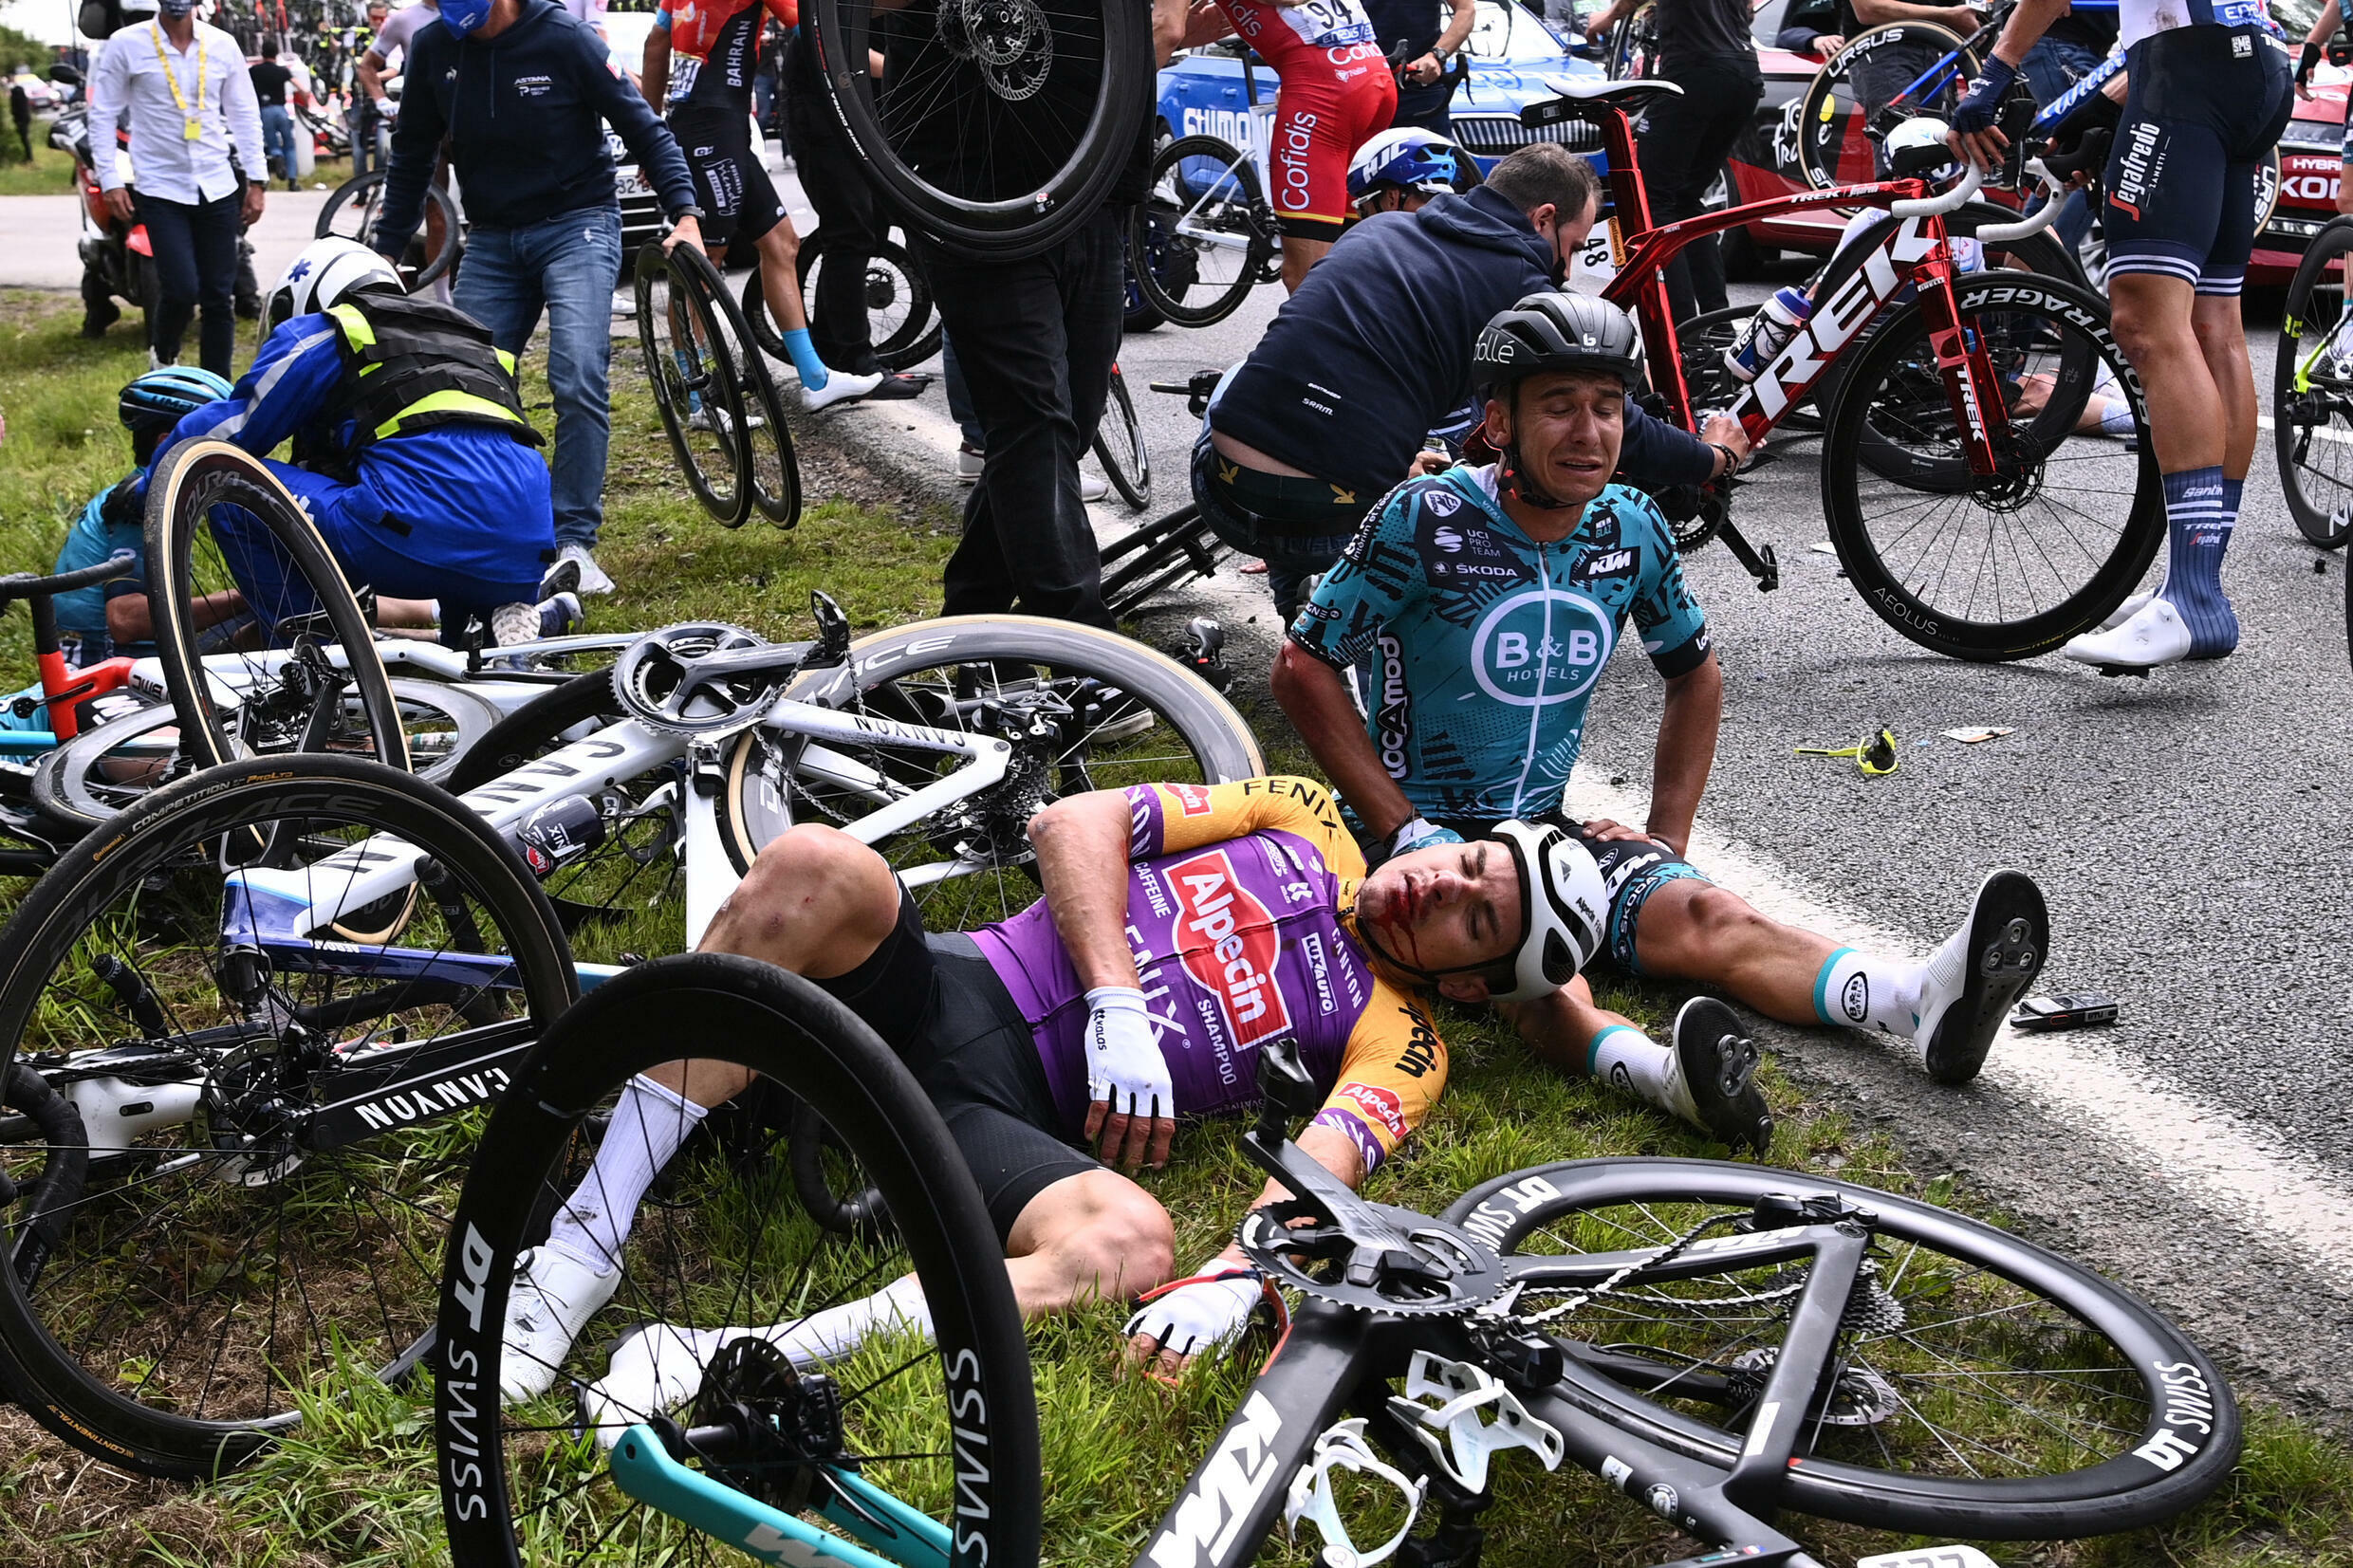 The spectator whose sign caused the crash on stage one of the Tour de France has been arrested